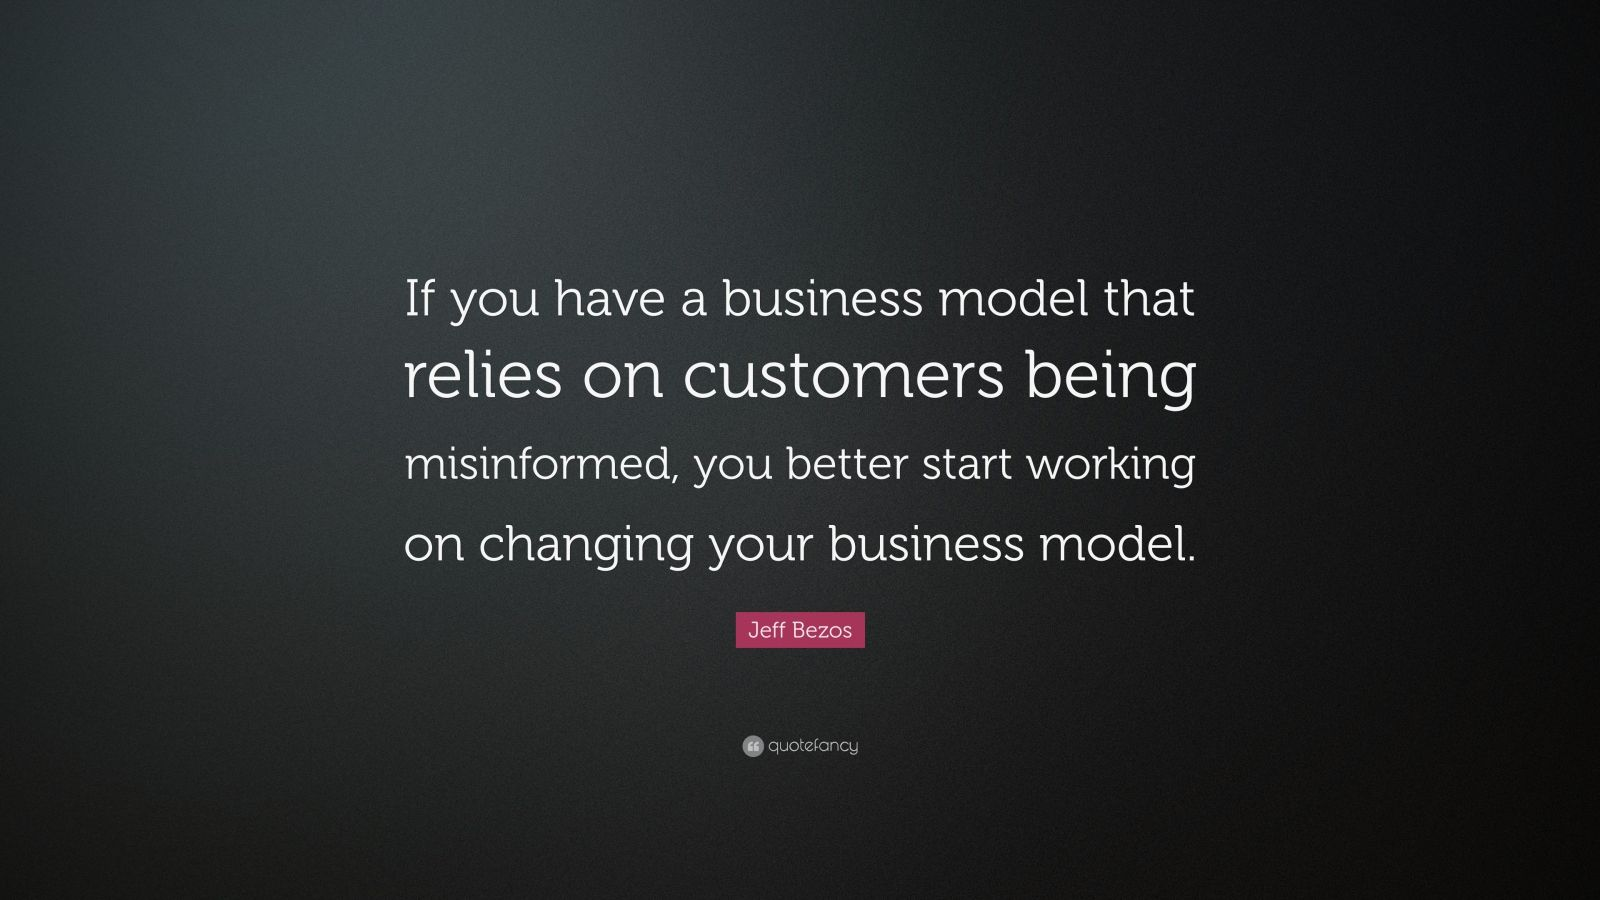 """Jeff Bezos Quote: """"If you have a business model that relies on customers being misinformed, you better start working on changing your business model."""""""